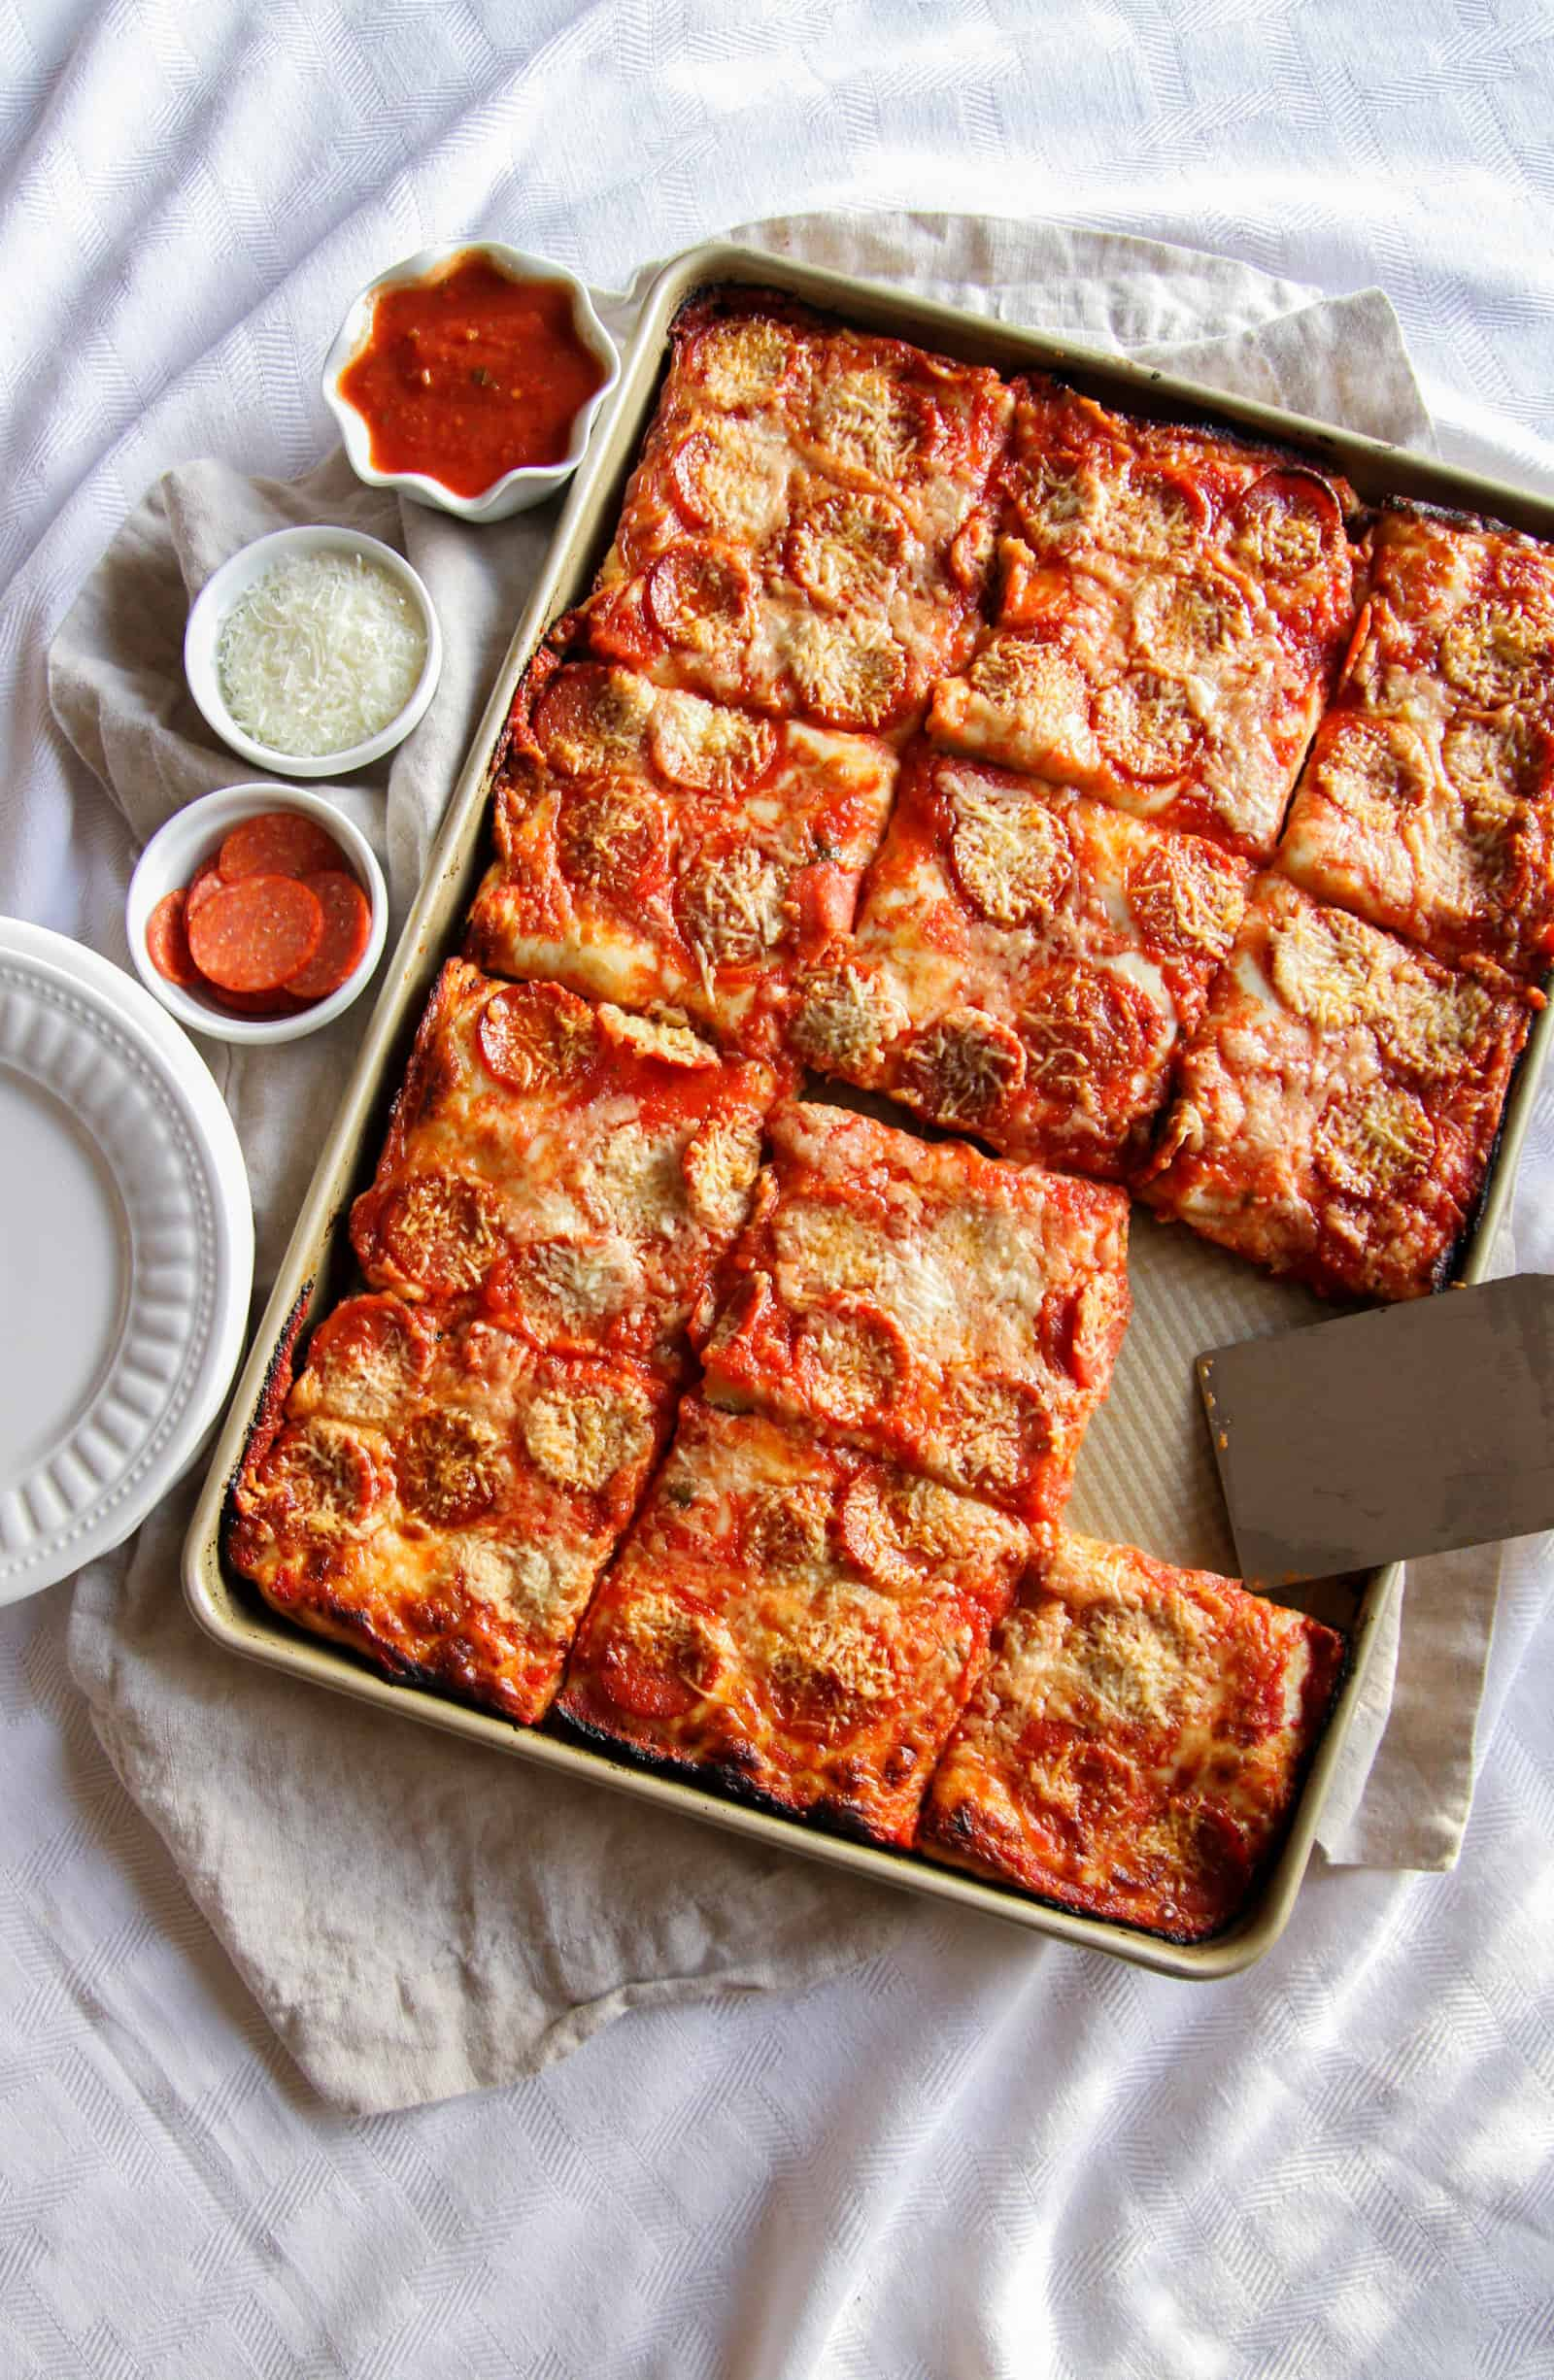 The most delicious sheet pan pizza